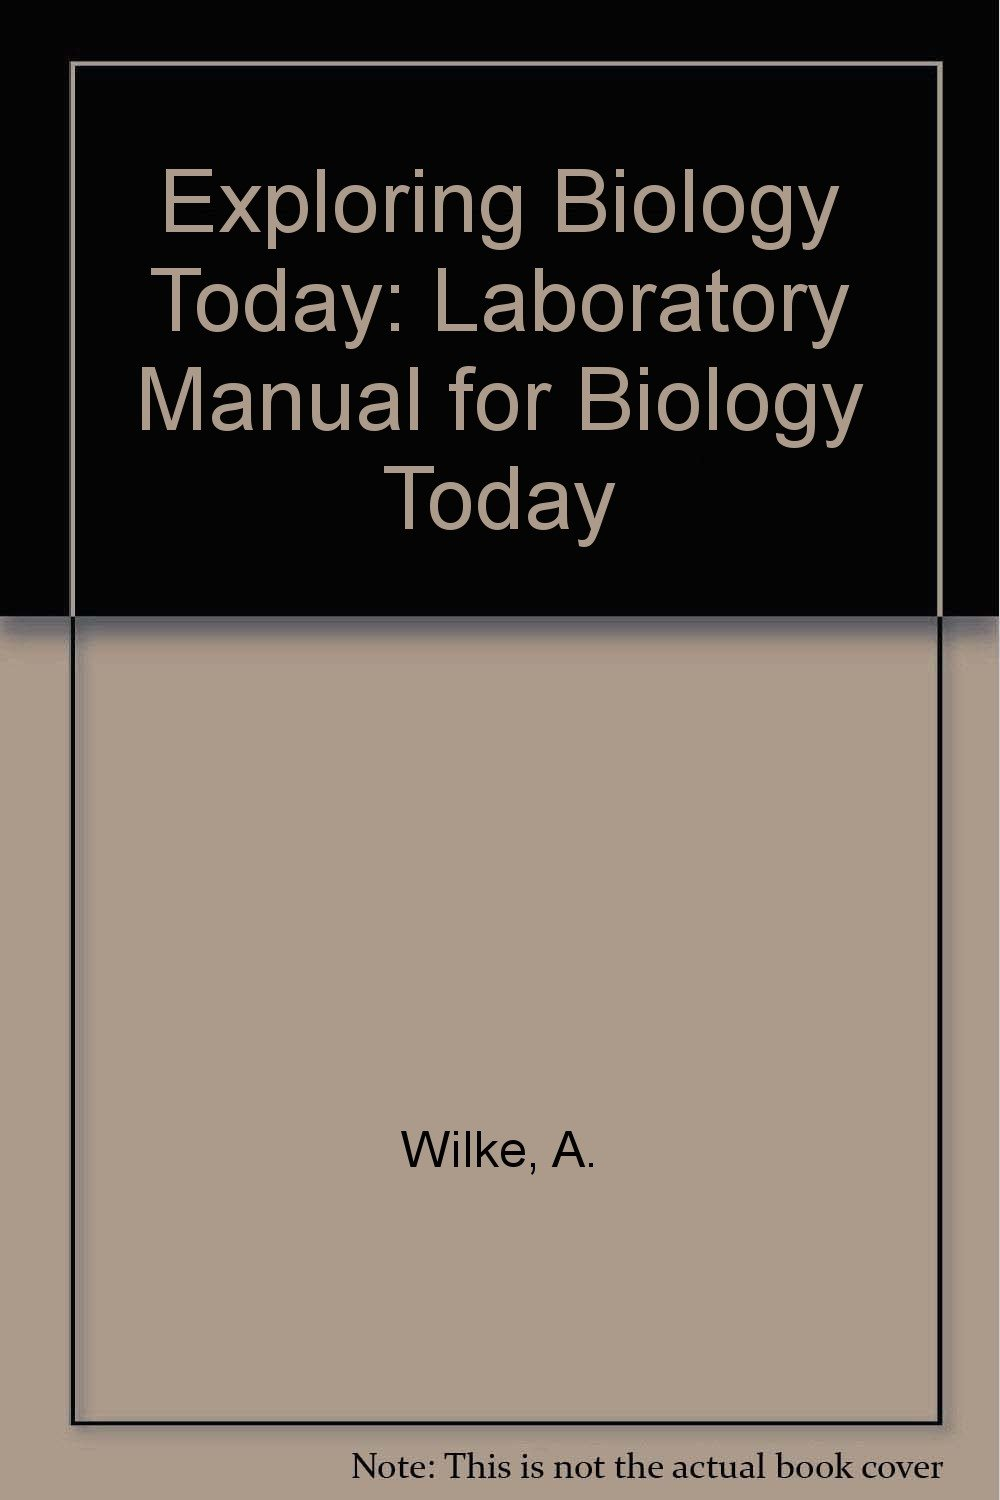 Buy Exploring Biology Today: Laboratory Manual for Biology Today Book  Online at Low Prices in India | Exploring Biology Today: Laboratory Manual  for Biology ...